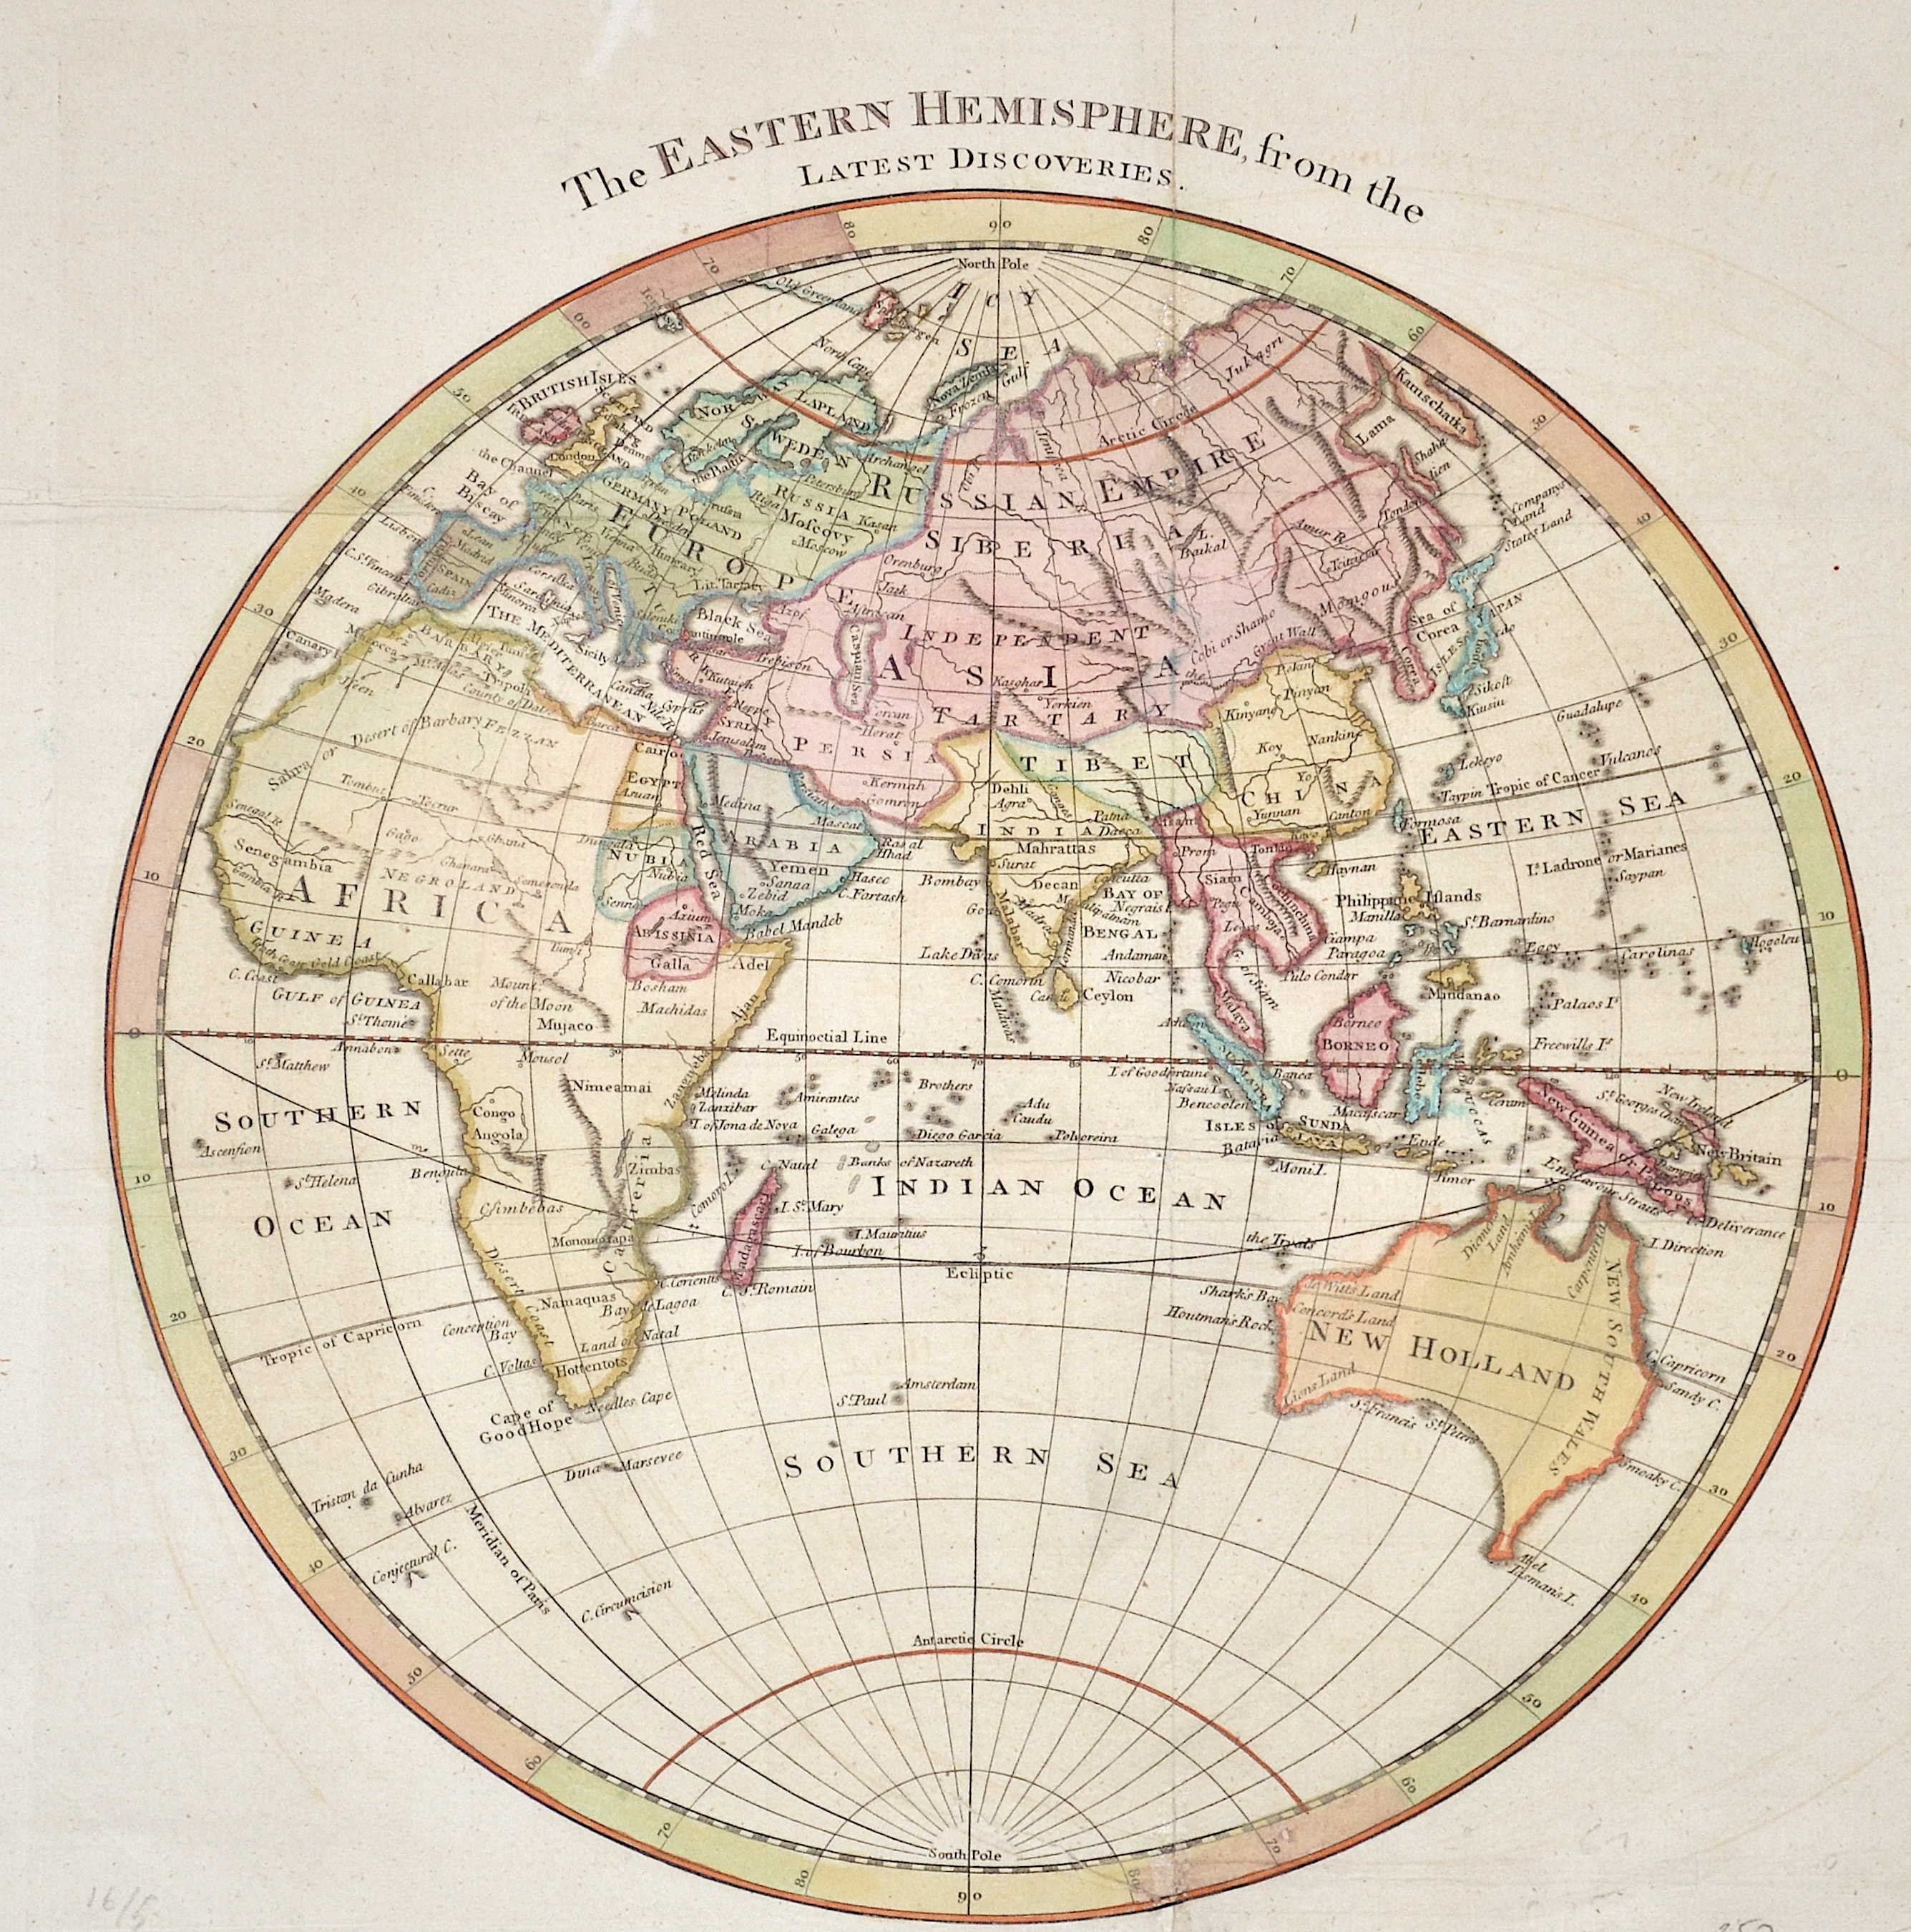 Anonymus  The Eastern Hemisphere, from the Latest Discoveries.